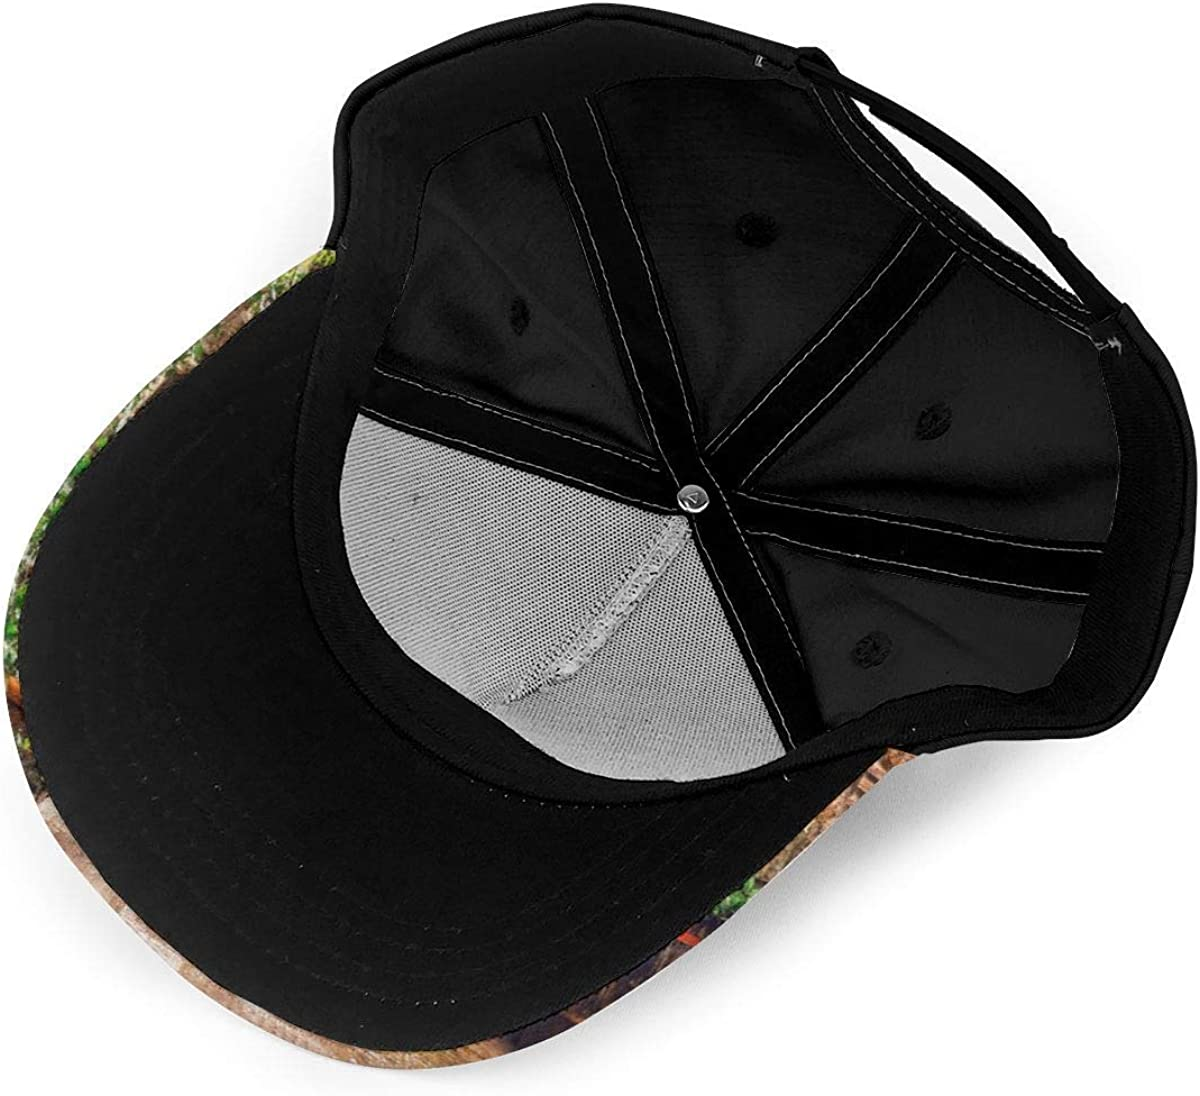 Uscan Old Mediterranean Lightweight Unisex Baseball Caps Adjustable Breathable Sun Hat for Sport Outdoor Black